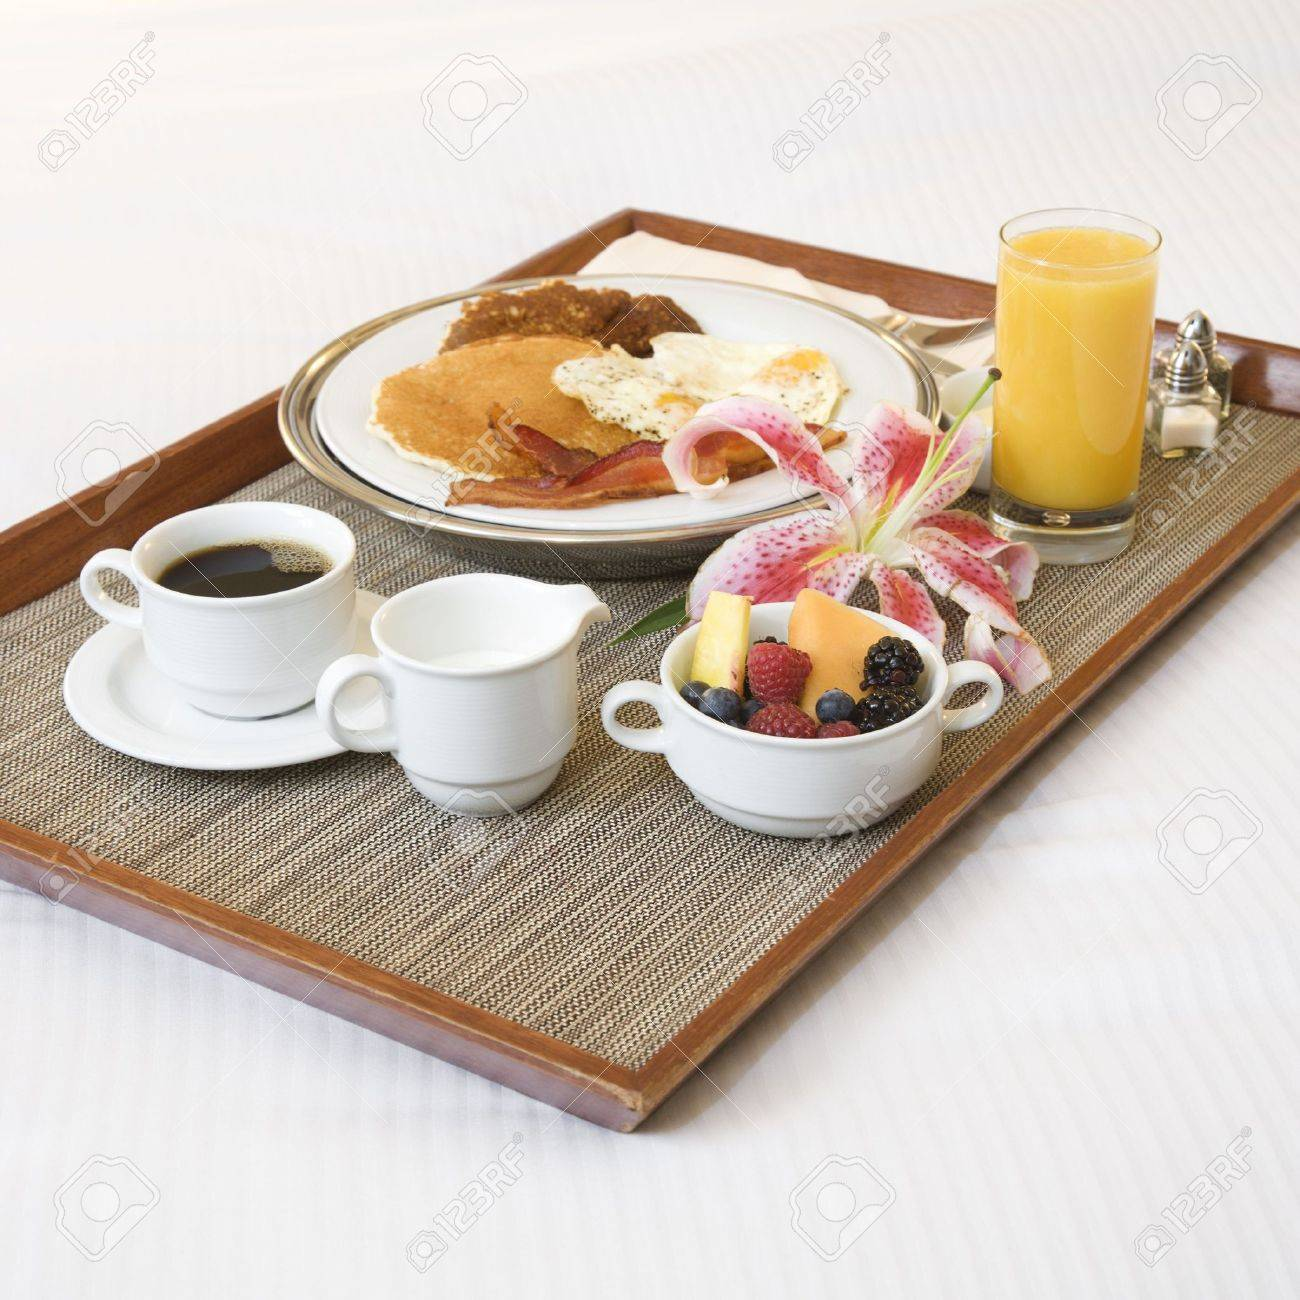 close-up of breakfast tray laying on white bed. stock photo